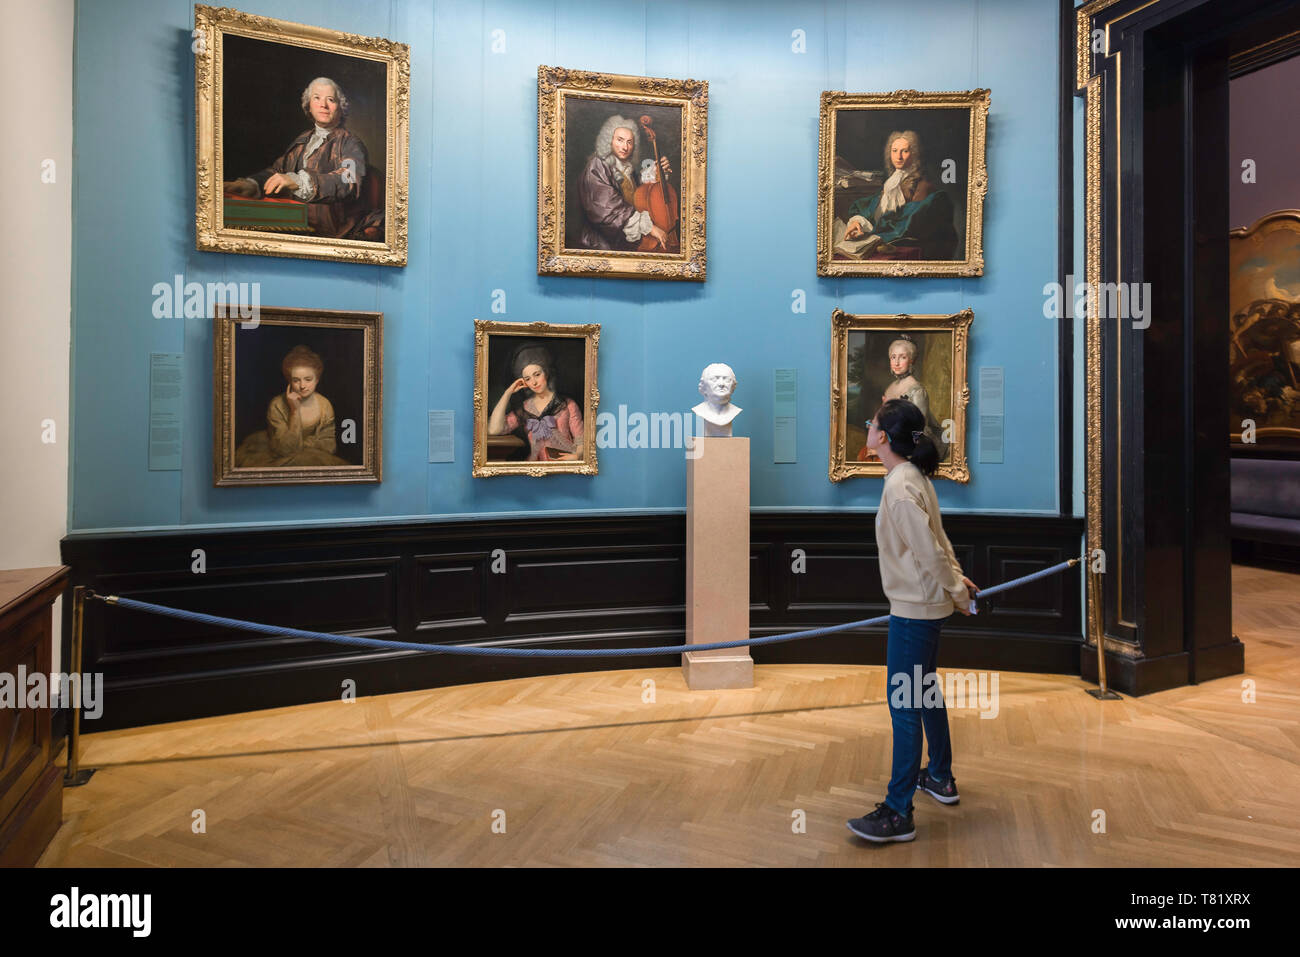 Young woman art, view of a young woman looking at 18th century portraits in the Kunsthistorisches Museum in Vienna, Austria. Stock Photo